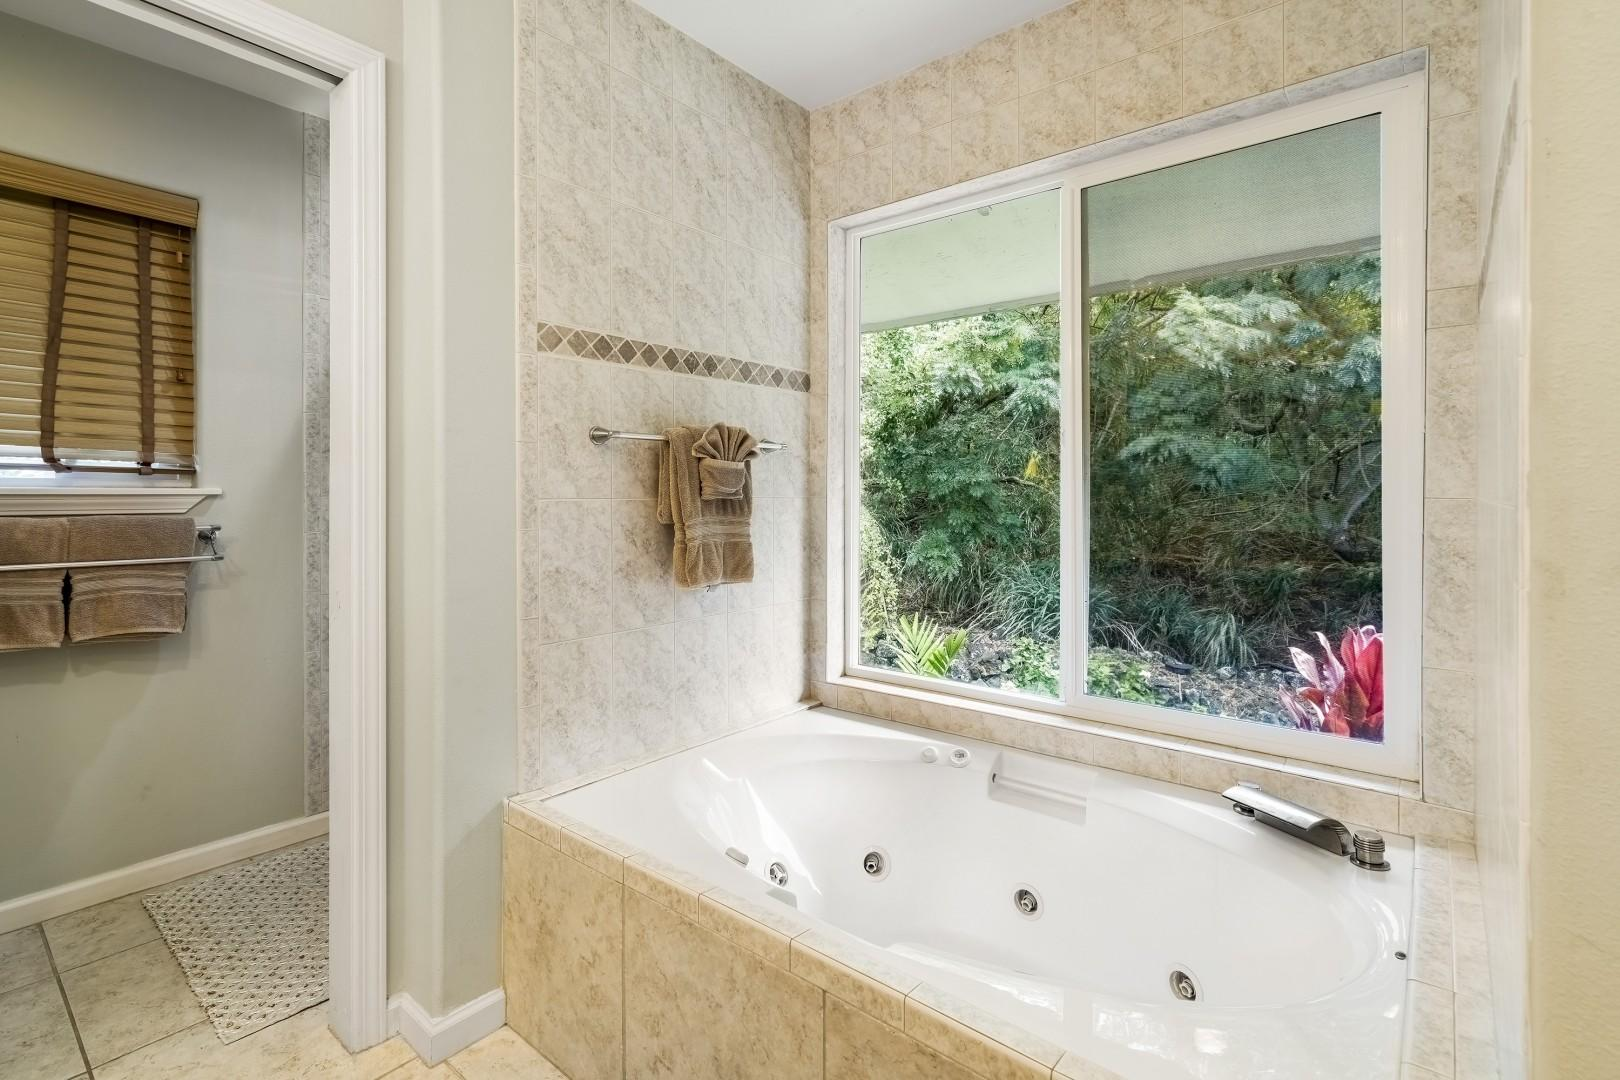 Master Bath with views of the garden